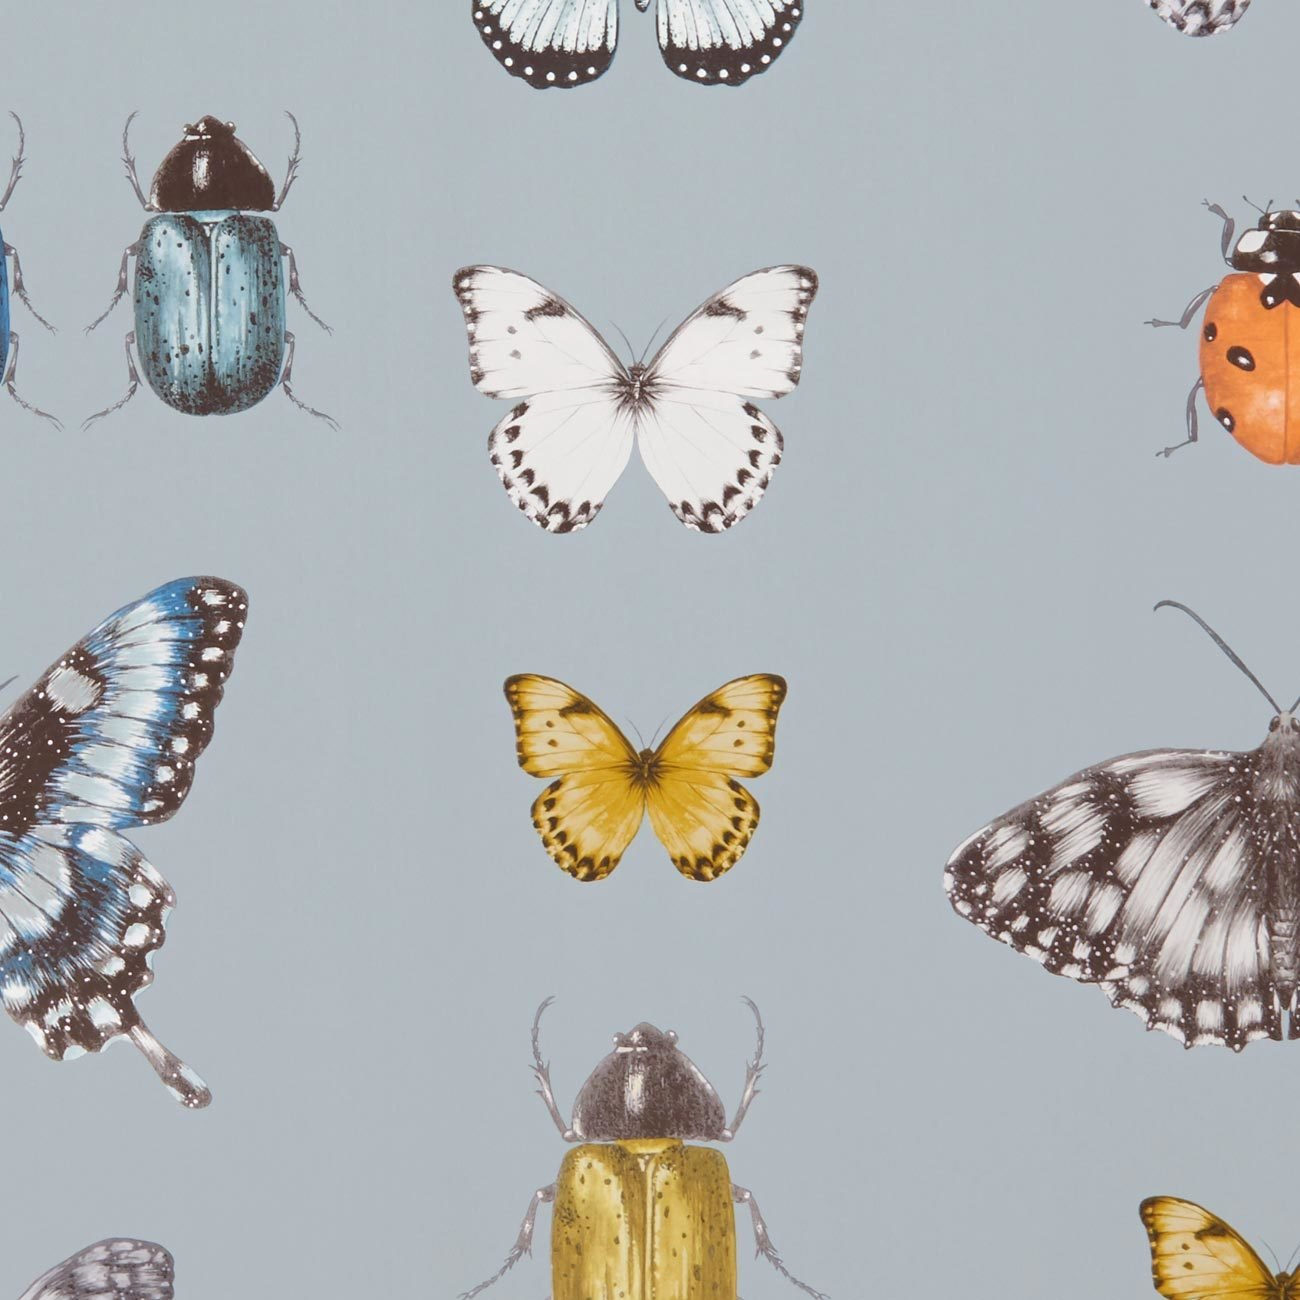 Papilio Traditional Insects & Butterflies  | Designer Motif Wallpaper in Mineral, Gold/Silver & Blue